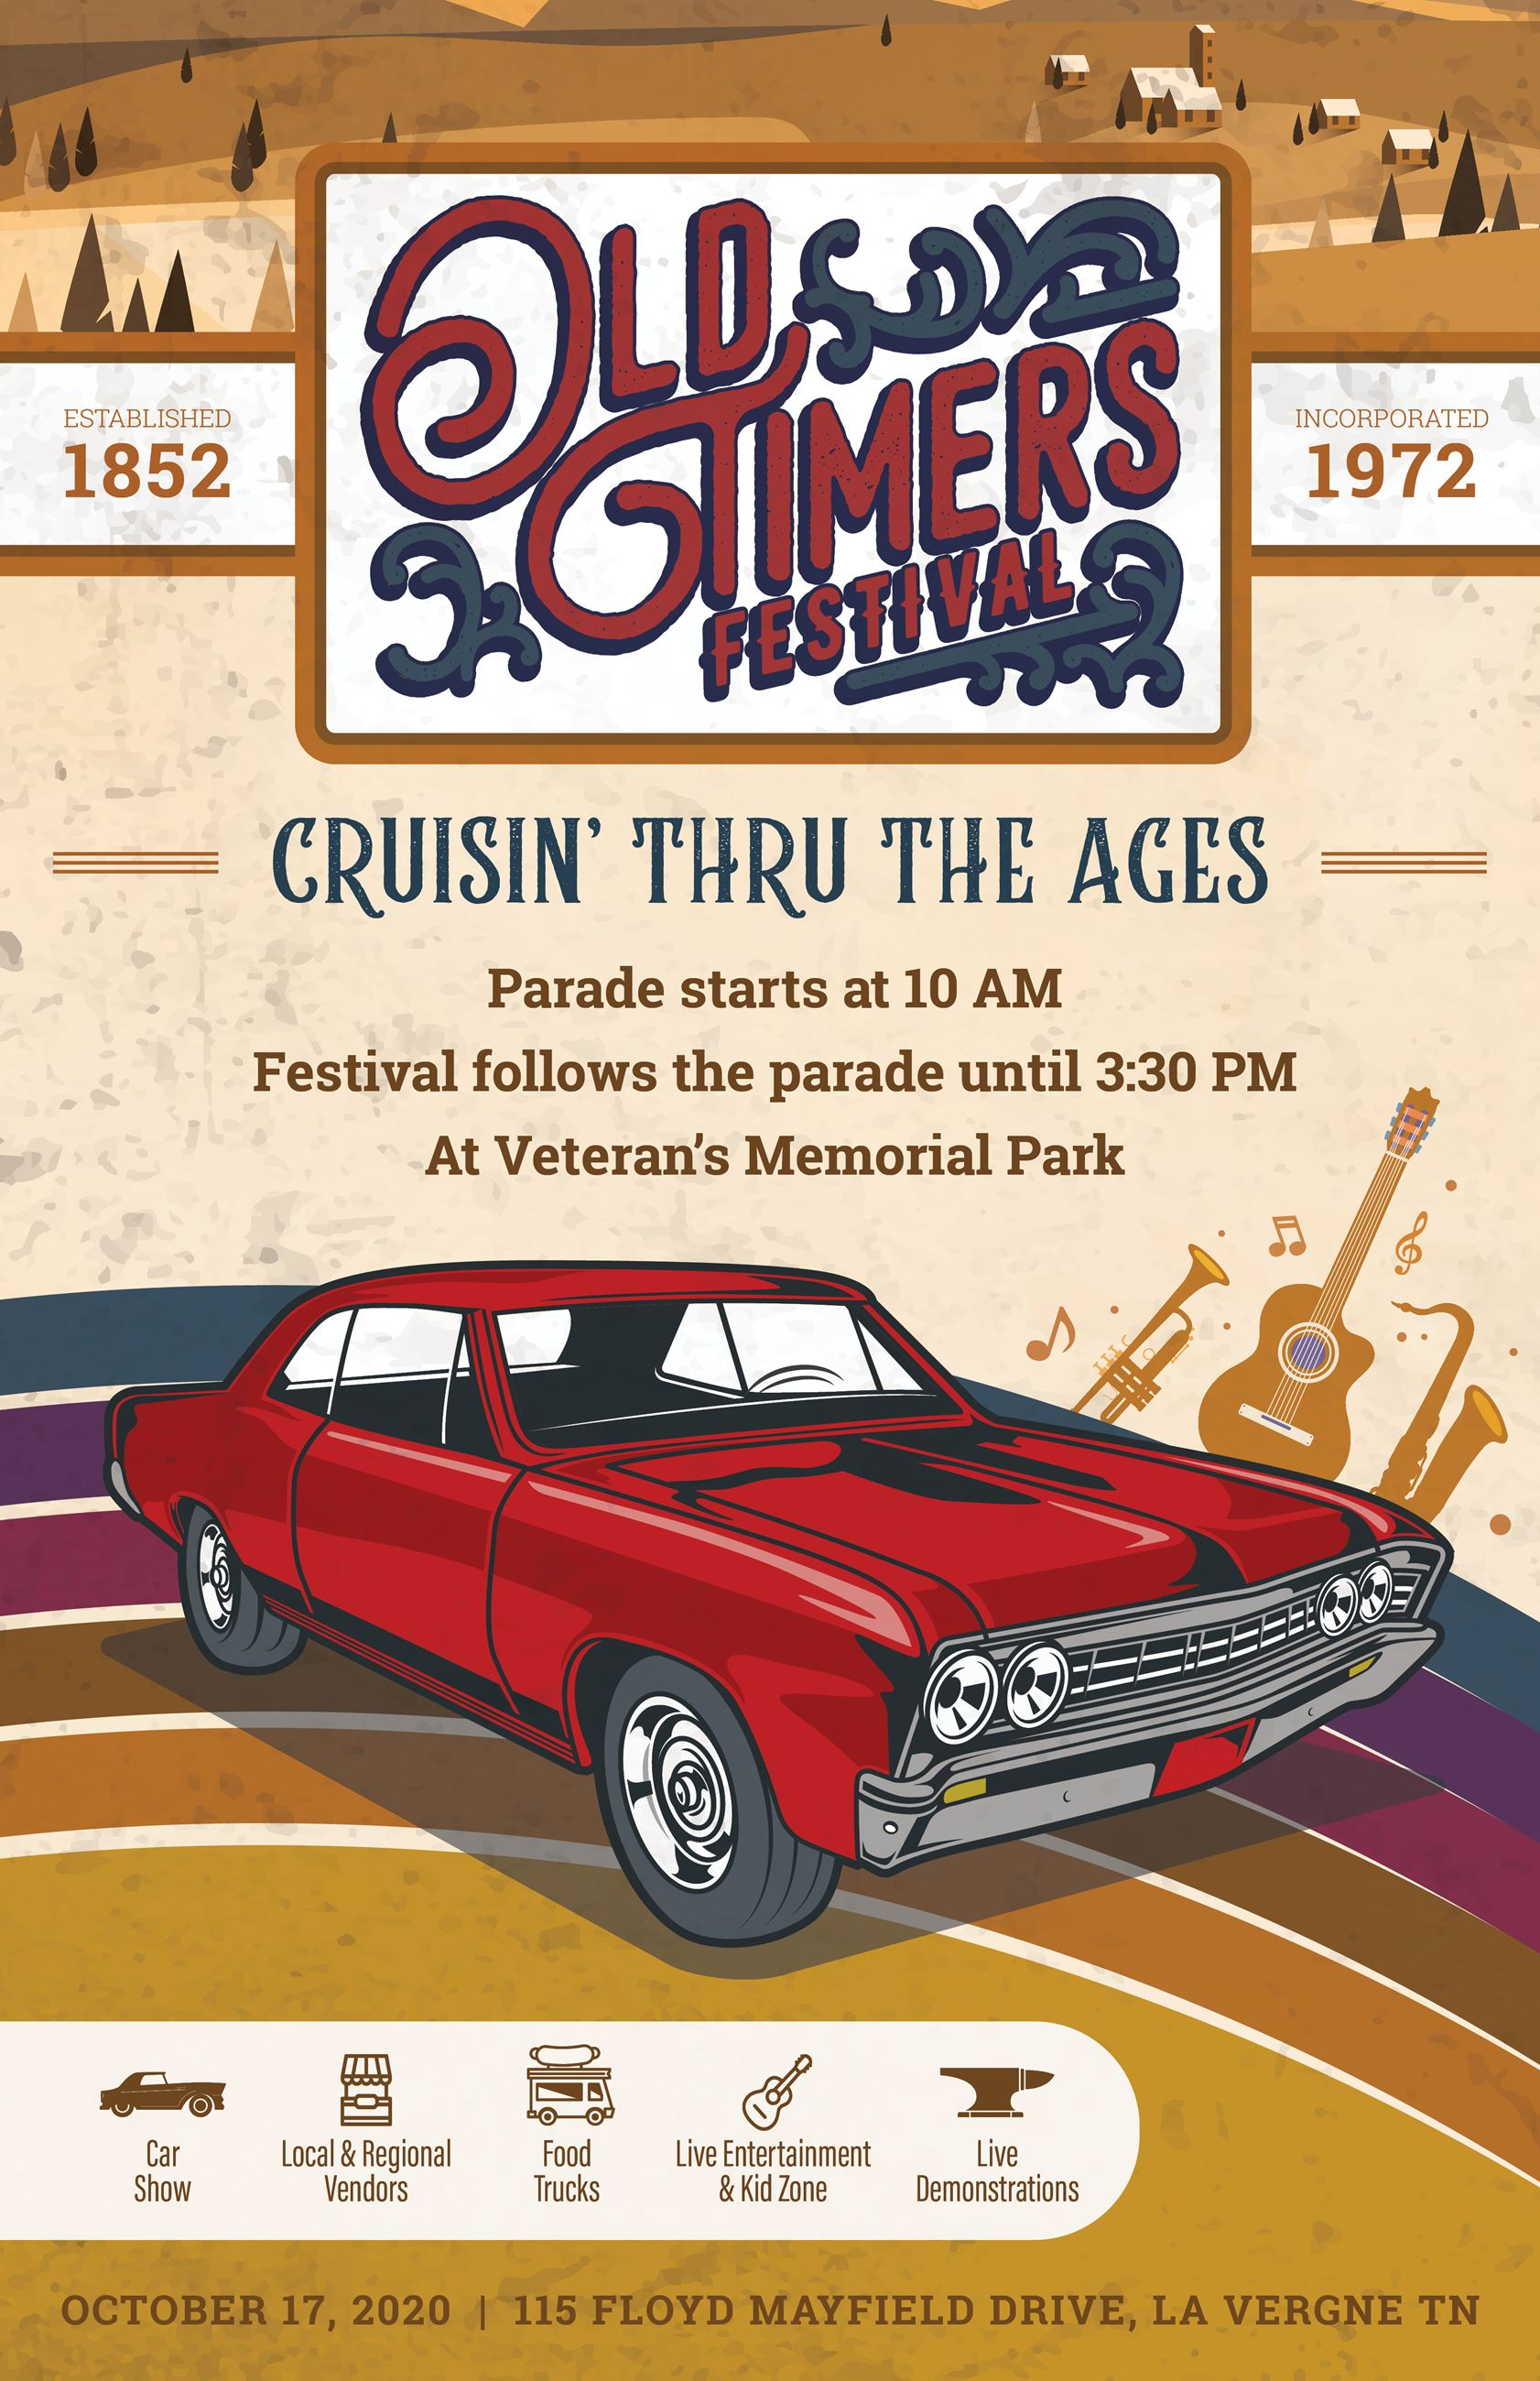 2020 Cruisin Thru the Ages Poster